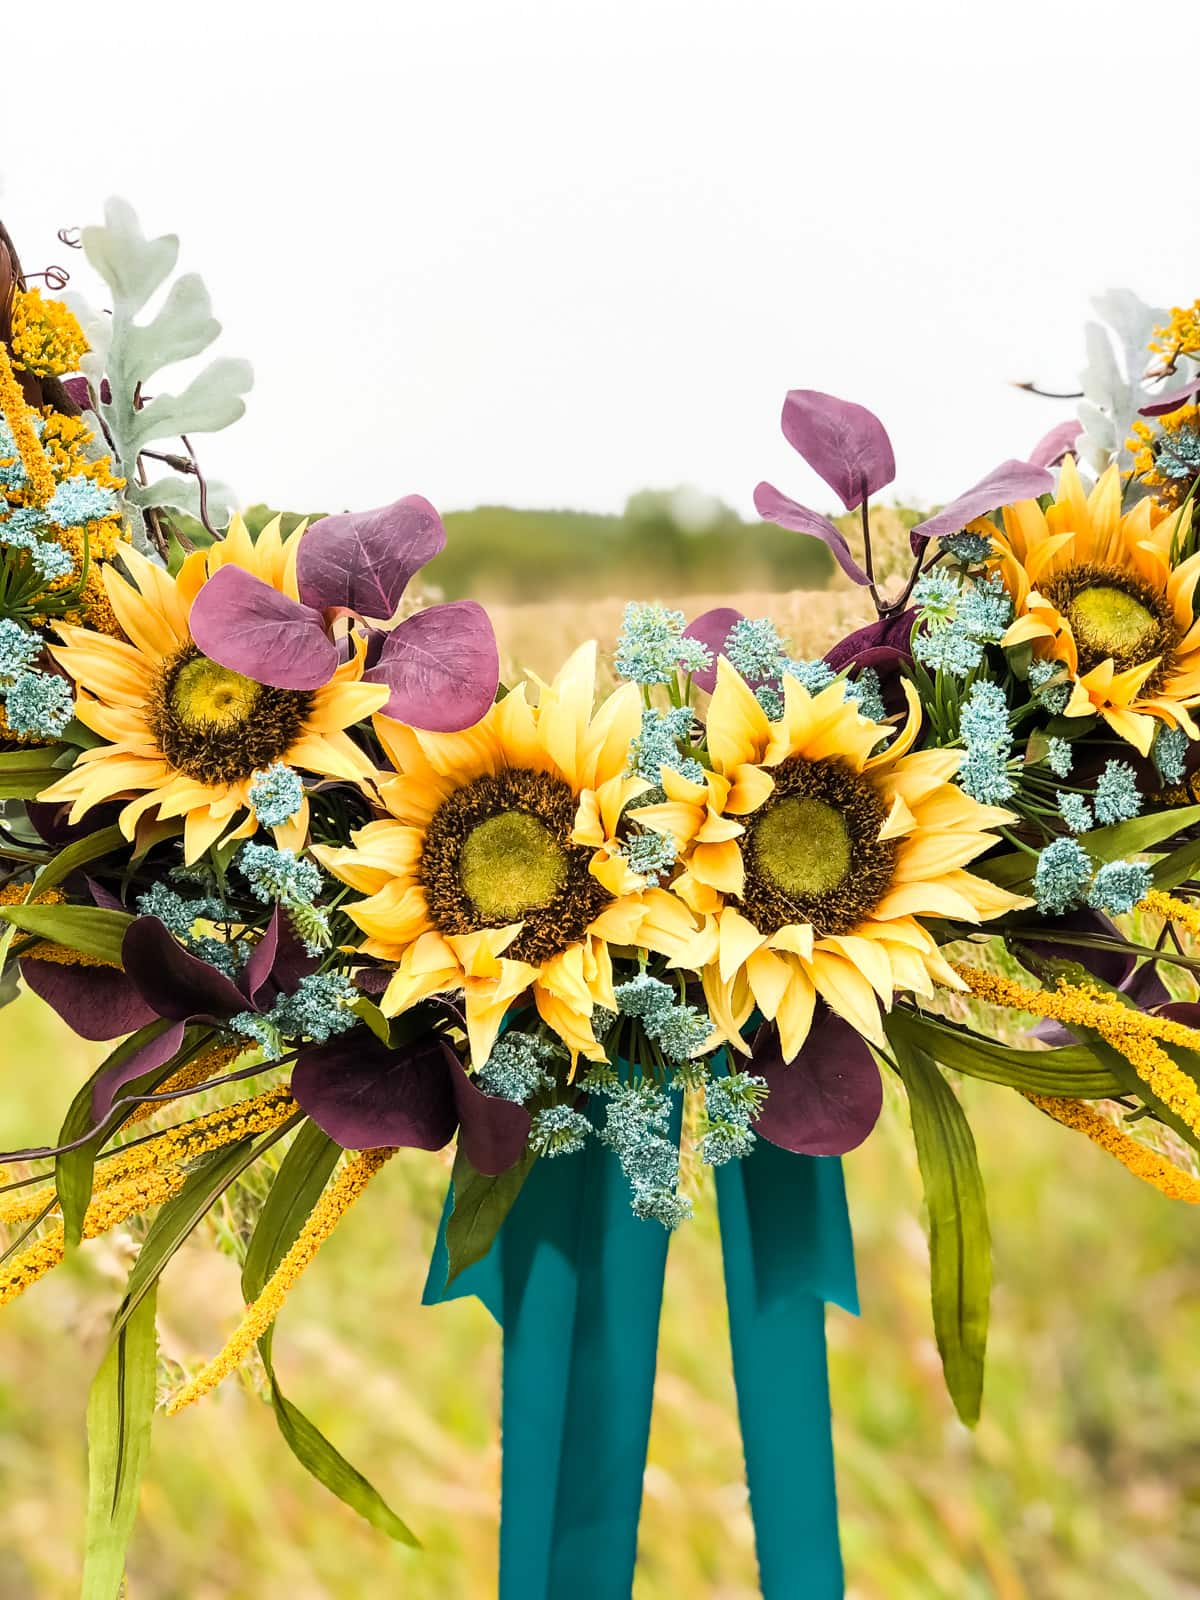 A close-up of the sunflowers at the base of the fall wreath